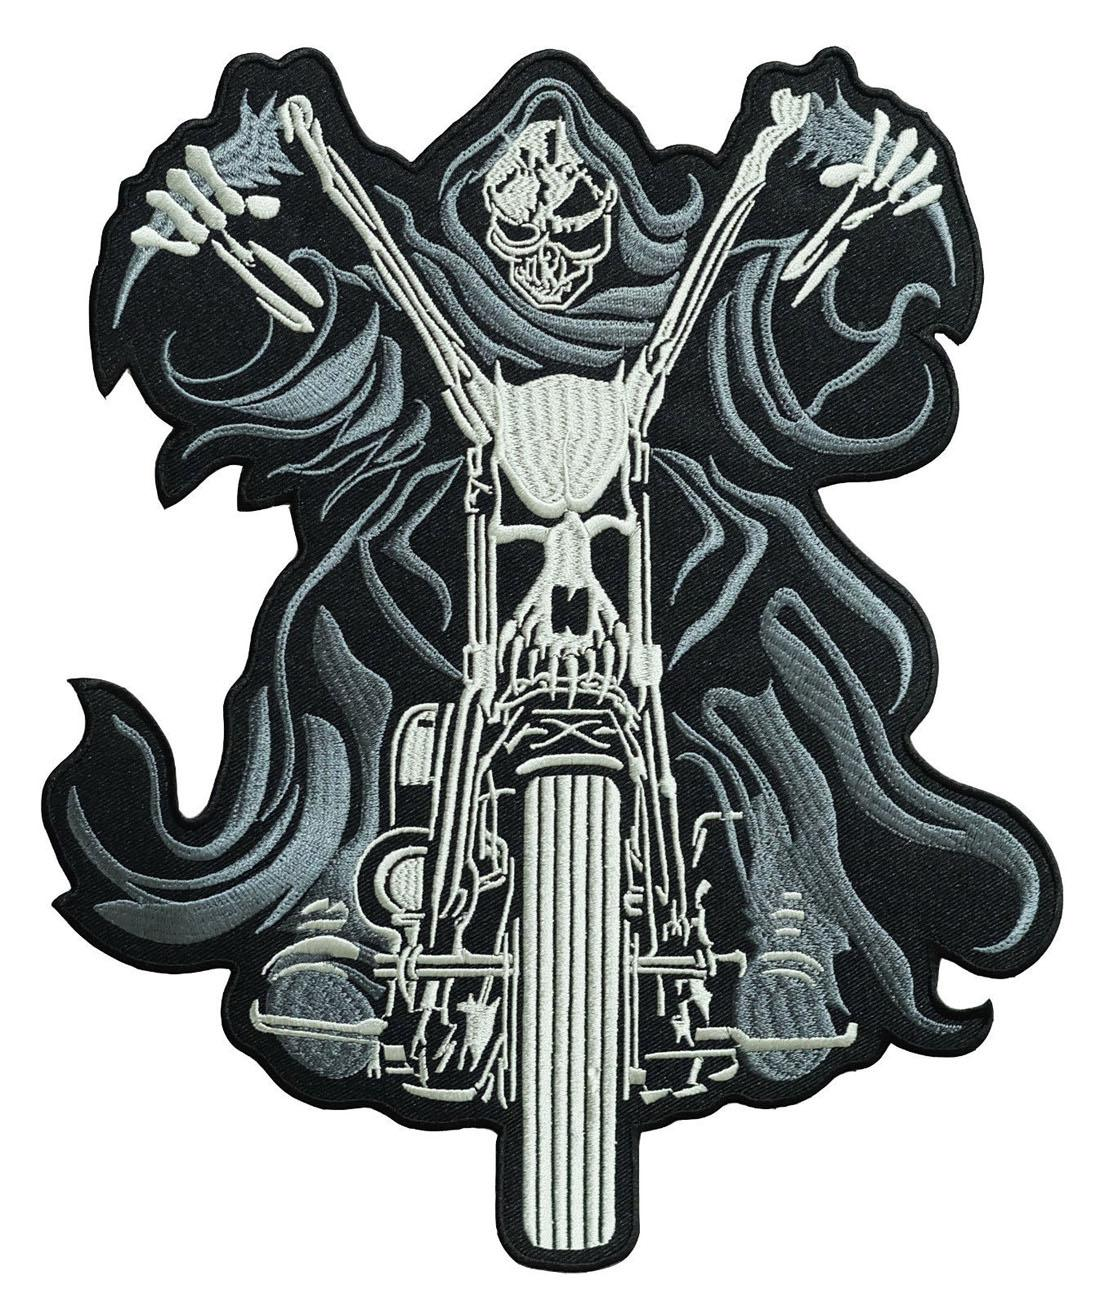 "Low Price 10"" x 8.5"" Skull Chopper Rider Large Embroidered Biker Back Patch Motocycle XL"